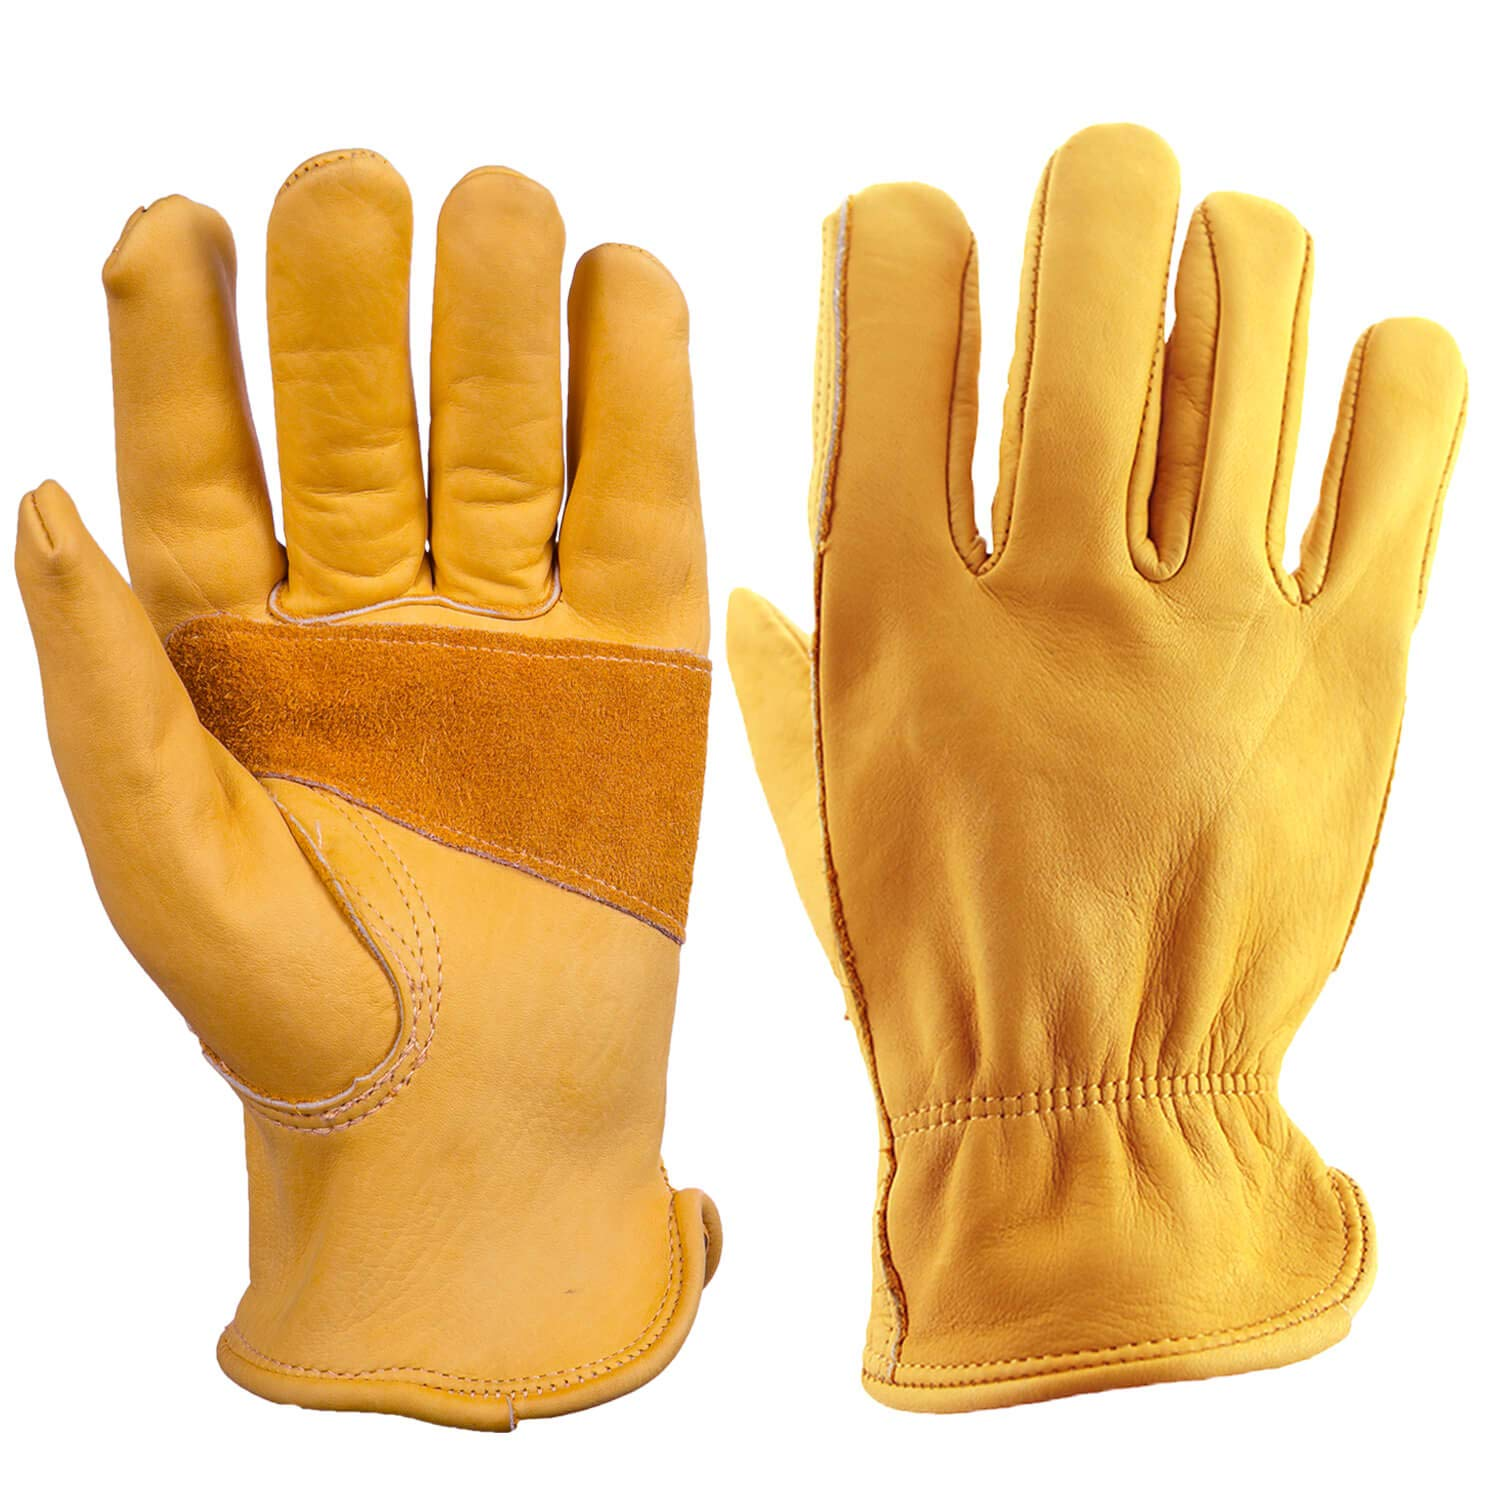 OZERO 3 Pair Flex Grip Leather Working Gloves Stretchable Tough Cowhide Work Glove (Gold, Large)